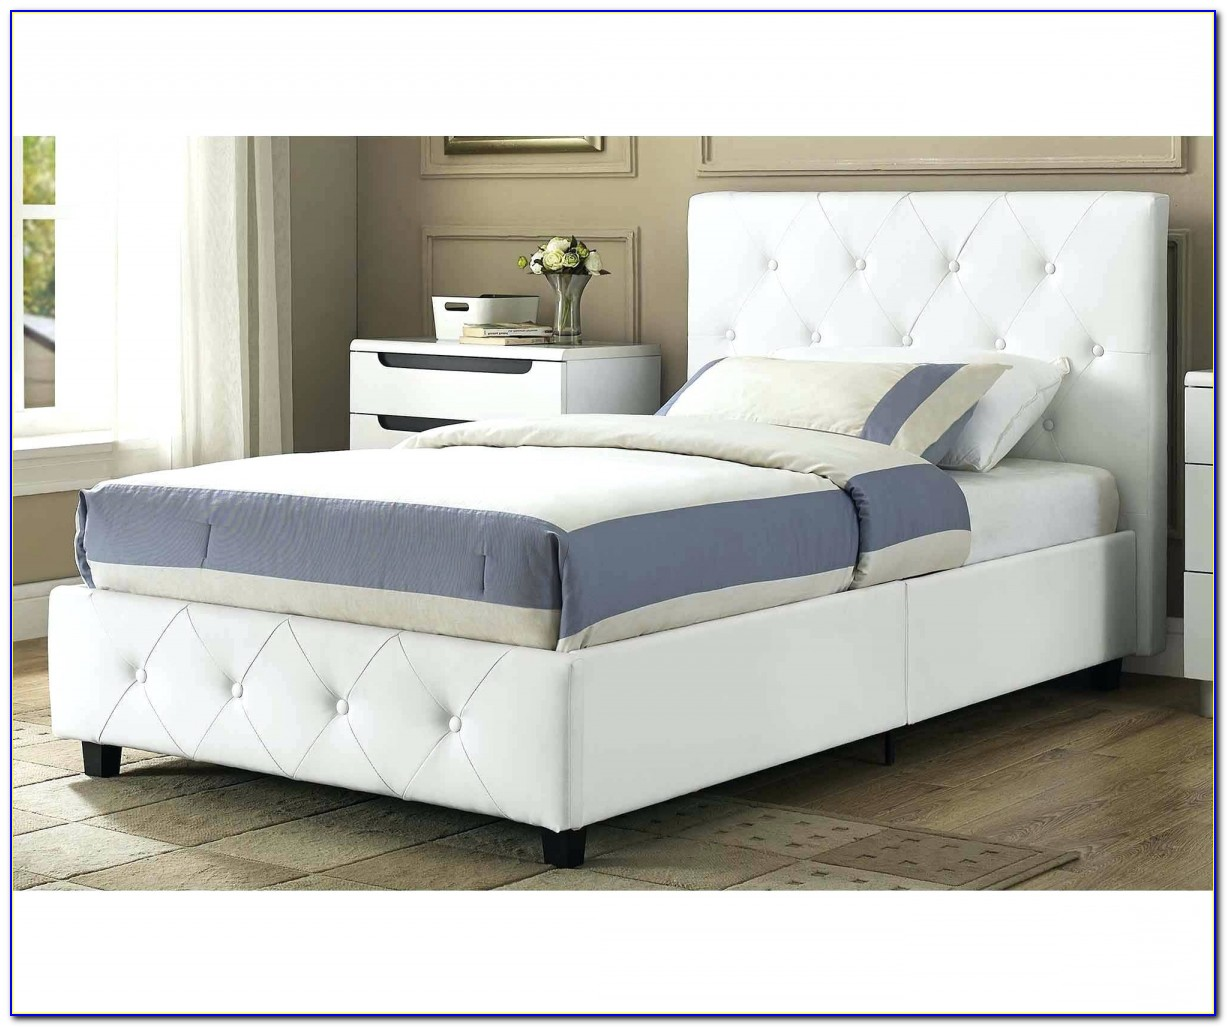 Bed Frame Without Headboard Australia